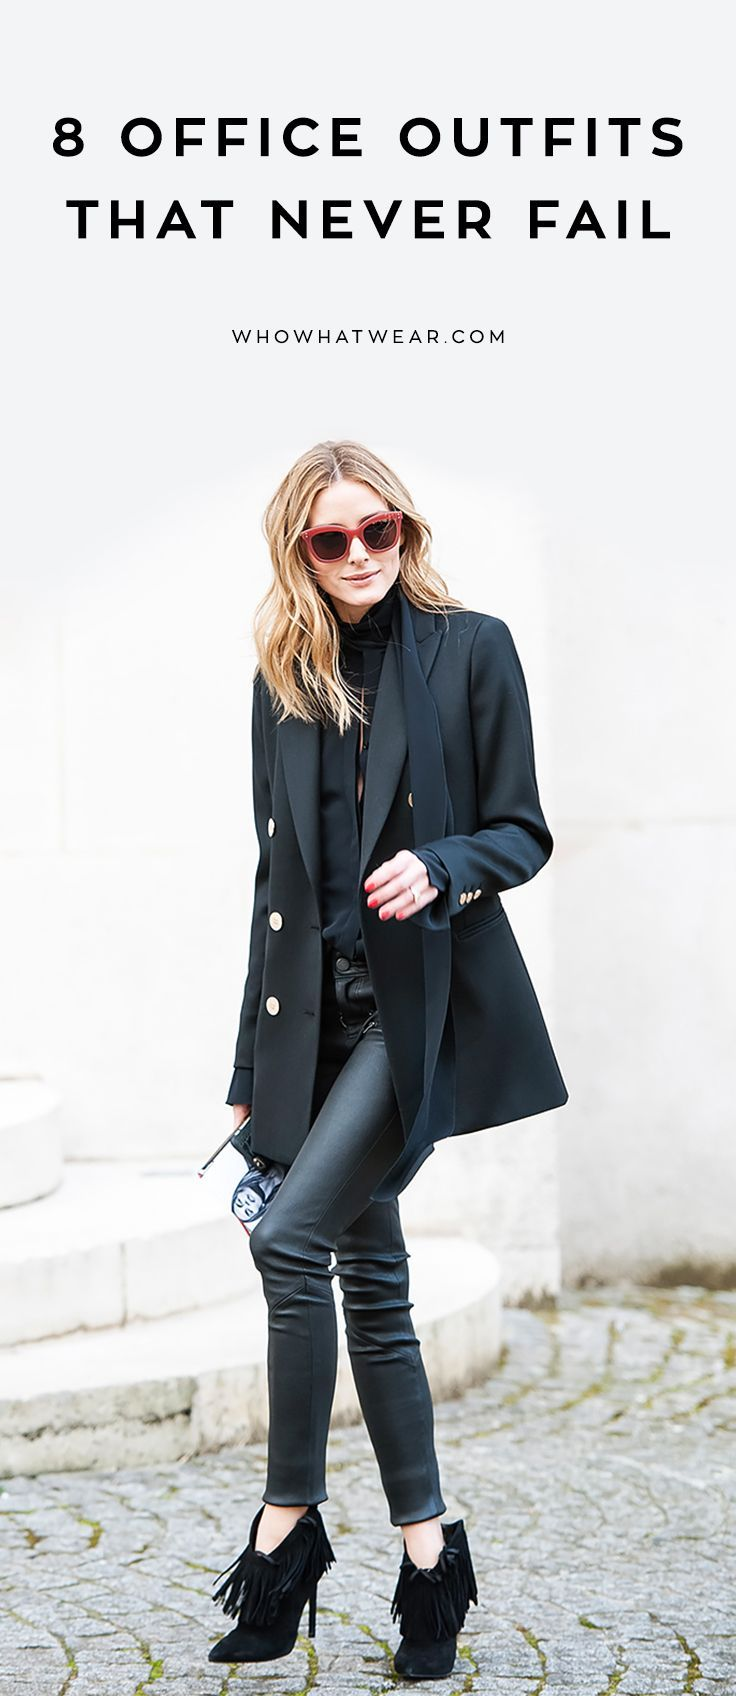 These outfit combos always work for the office.